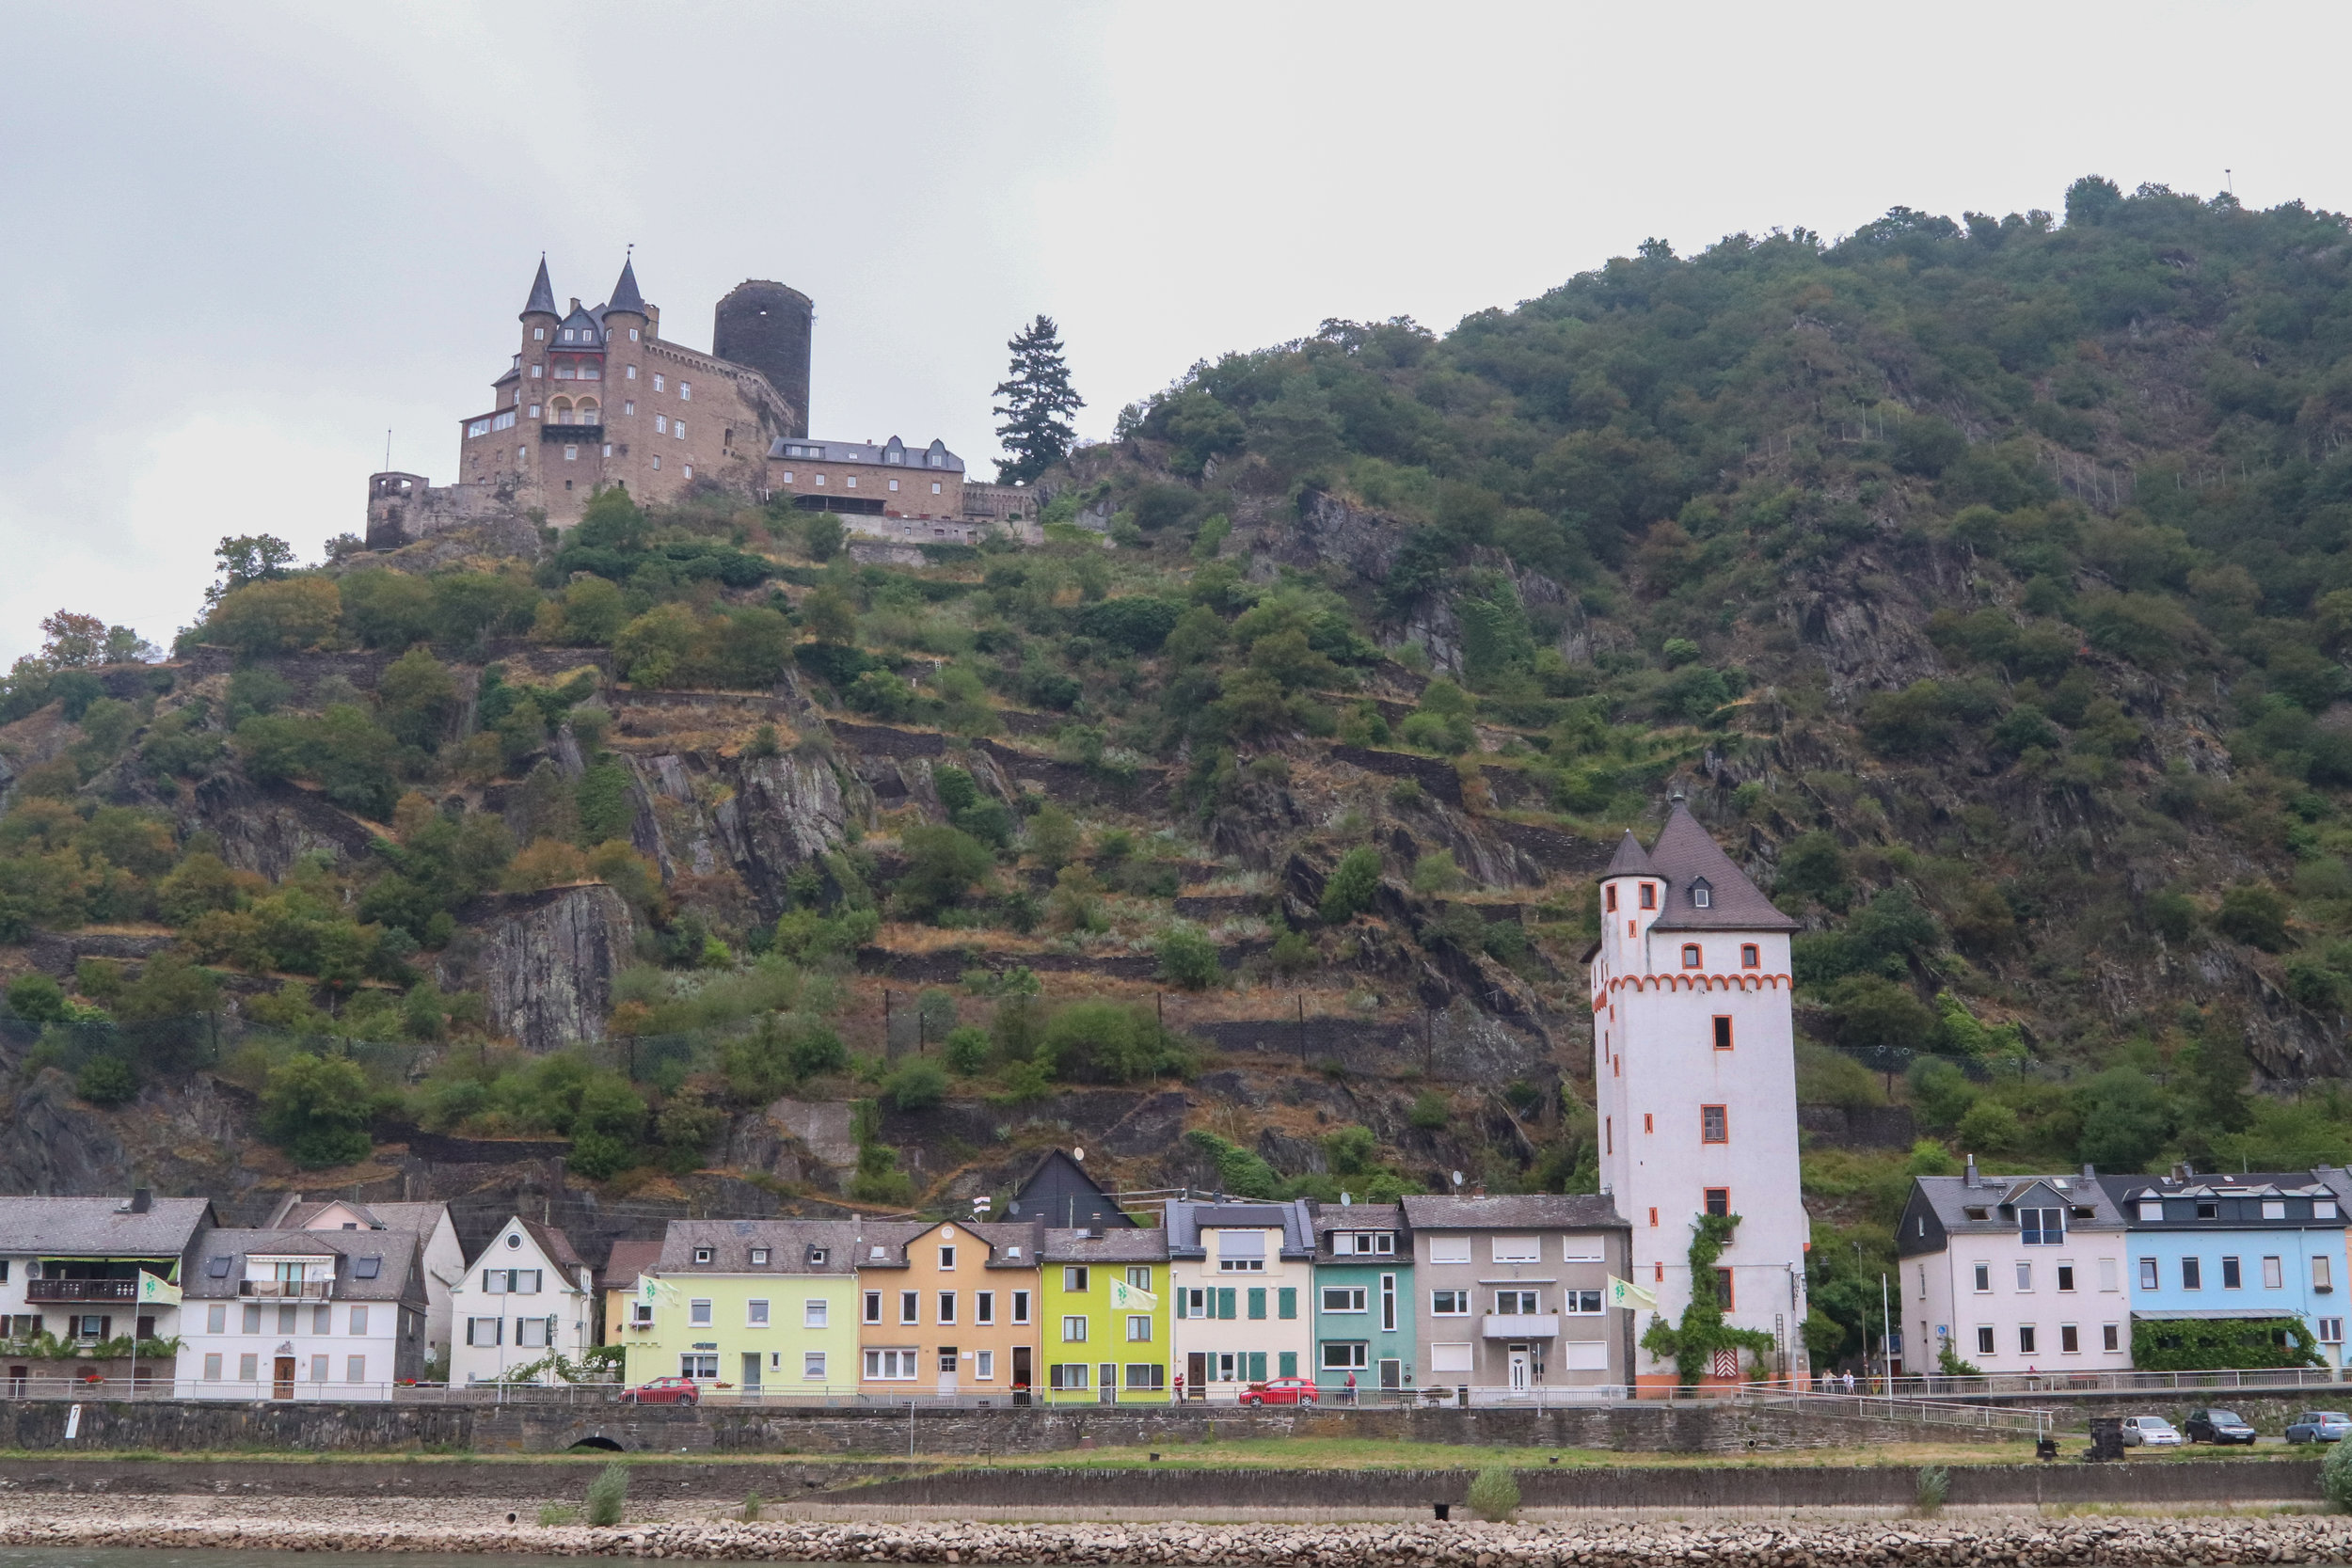 Guide to Bacharach, Germany